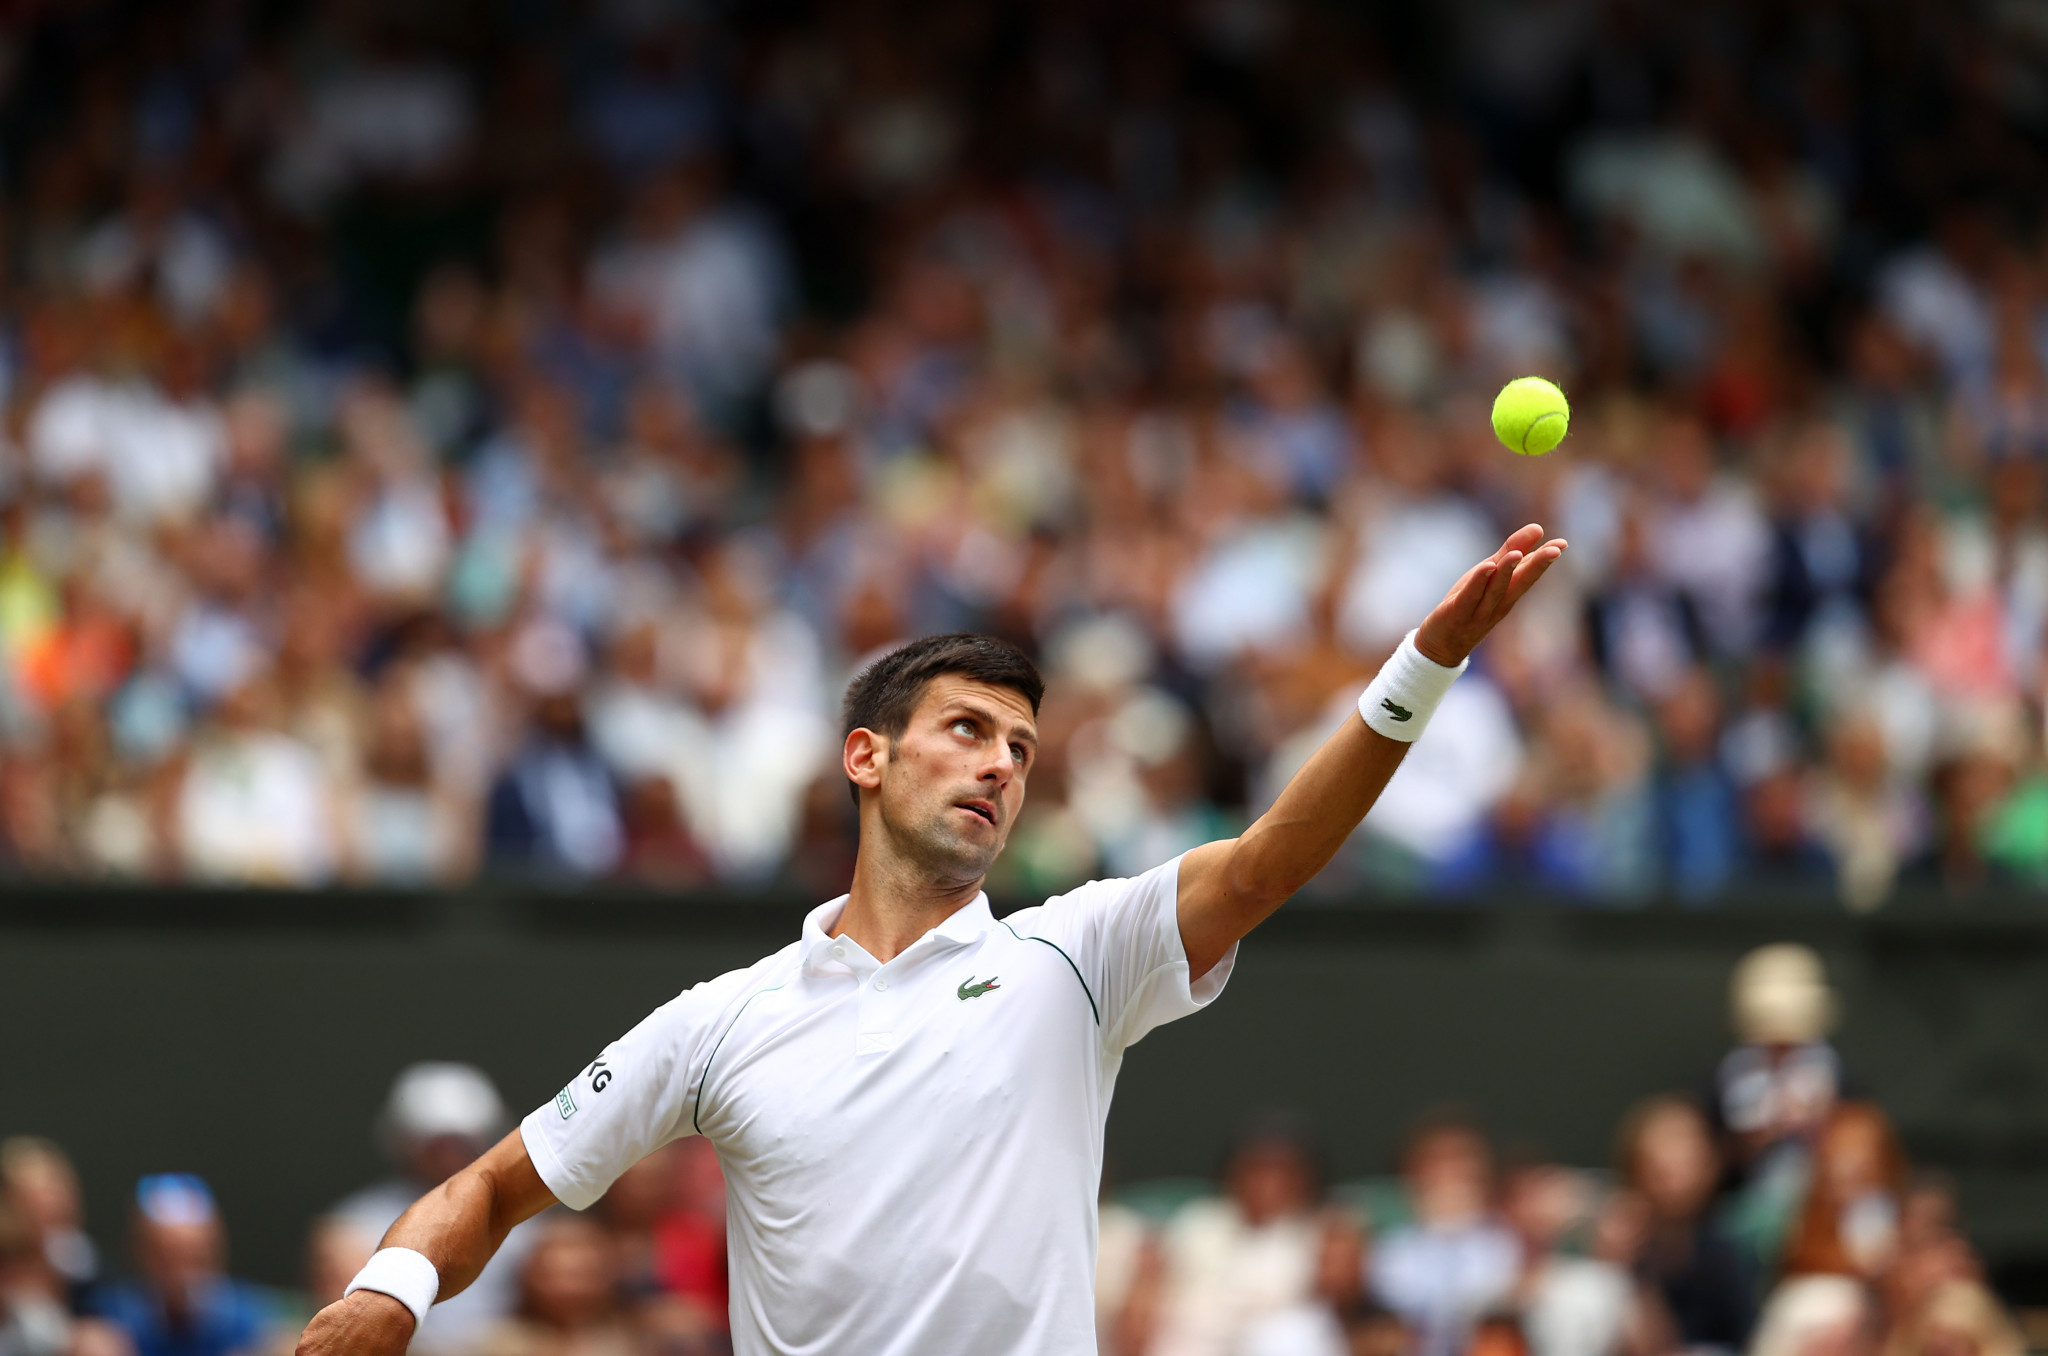 Novak Djokovic has won 12 sets in a row and is into the Wimbledon quarter-finals ©Getty Images